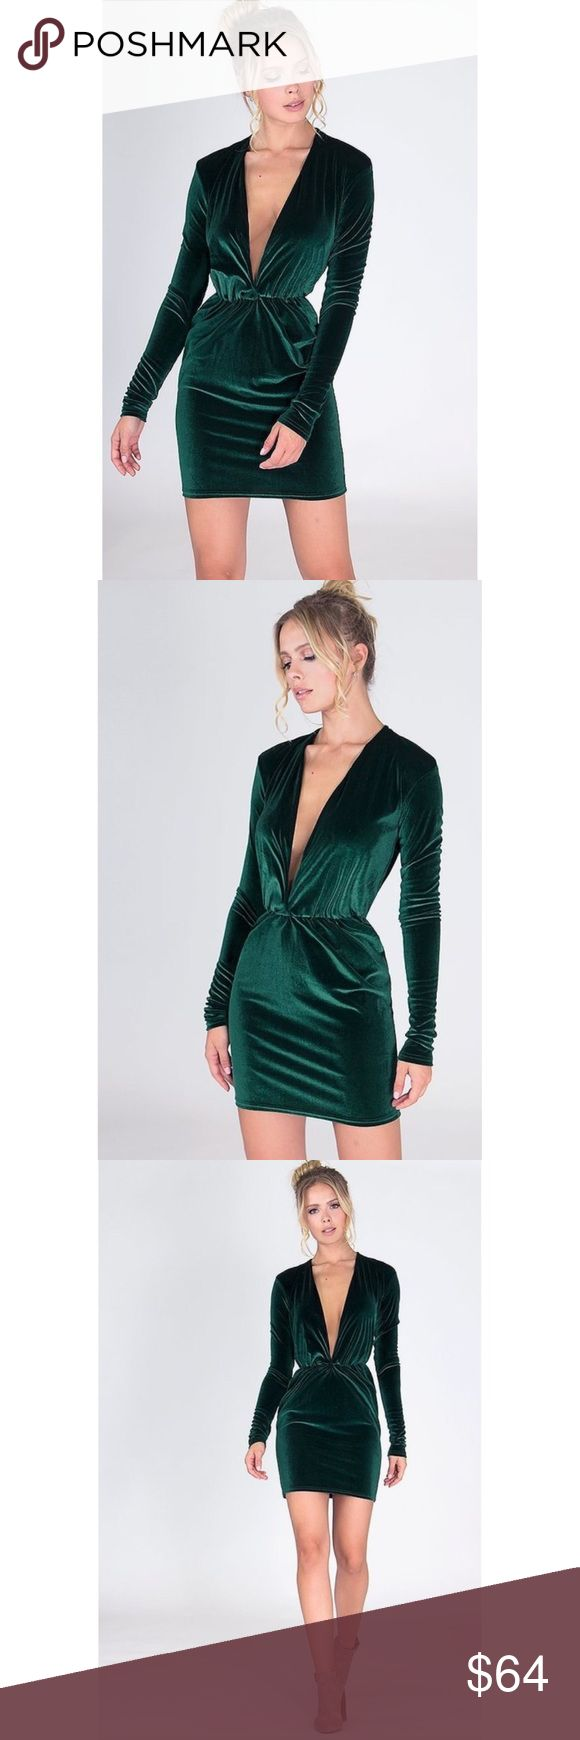 Green Long Sleeve Plunging Velvet Holiday Dress New with tags. Gorgeous deep hunter green dress made in a smooth and soft velvet. Featuring a flattering deep v-neckline, long sleeves, and ruched waistline. Perfect Holiday party dress. 95% polyester, 5% spandex. Made in USA. ❌SORRY, NO TRADES. The O Boutique Dresses Long Sleeve